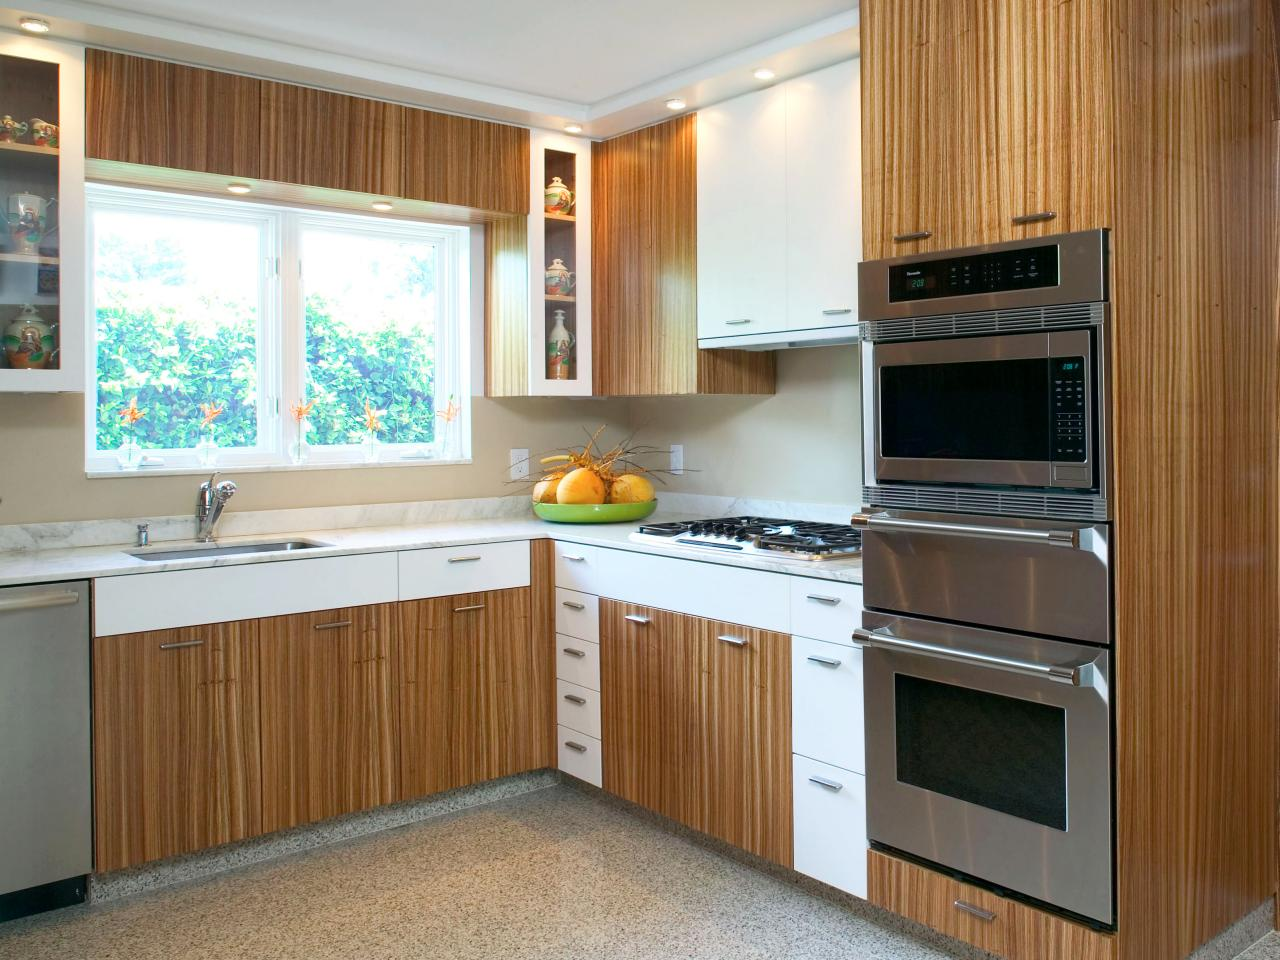 zebra wood cabinets kitchen modern bench galley kitchen